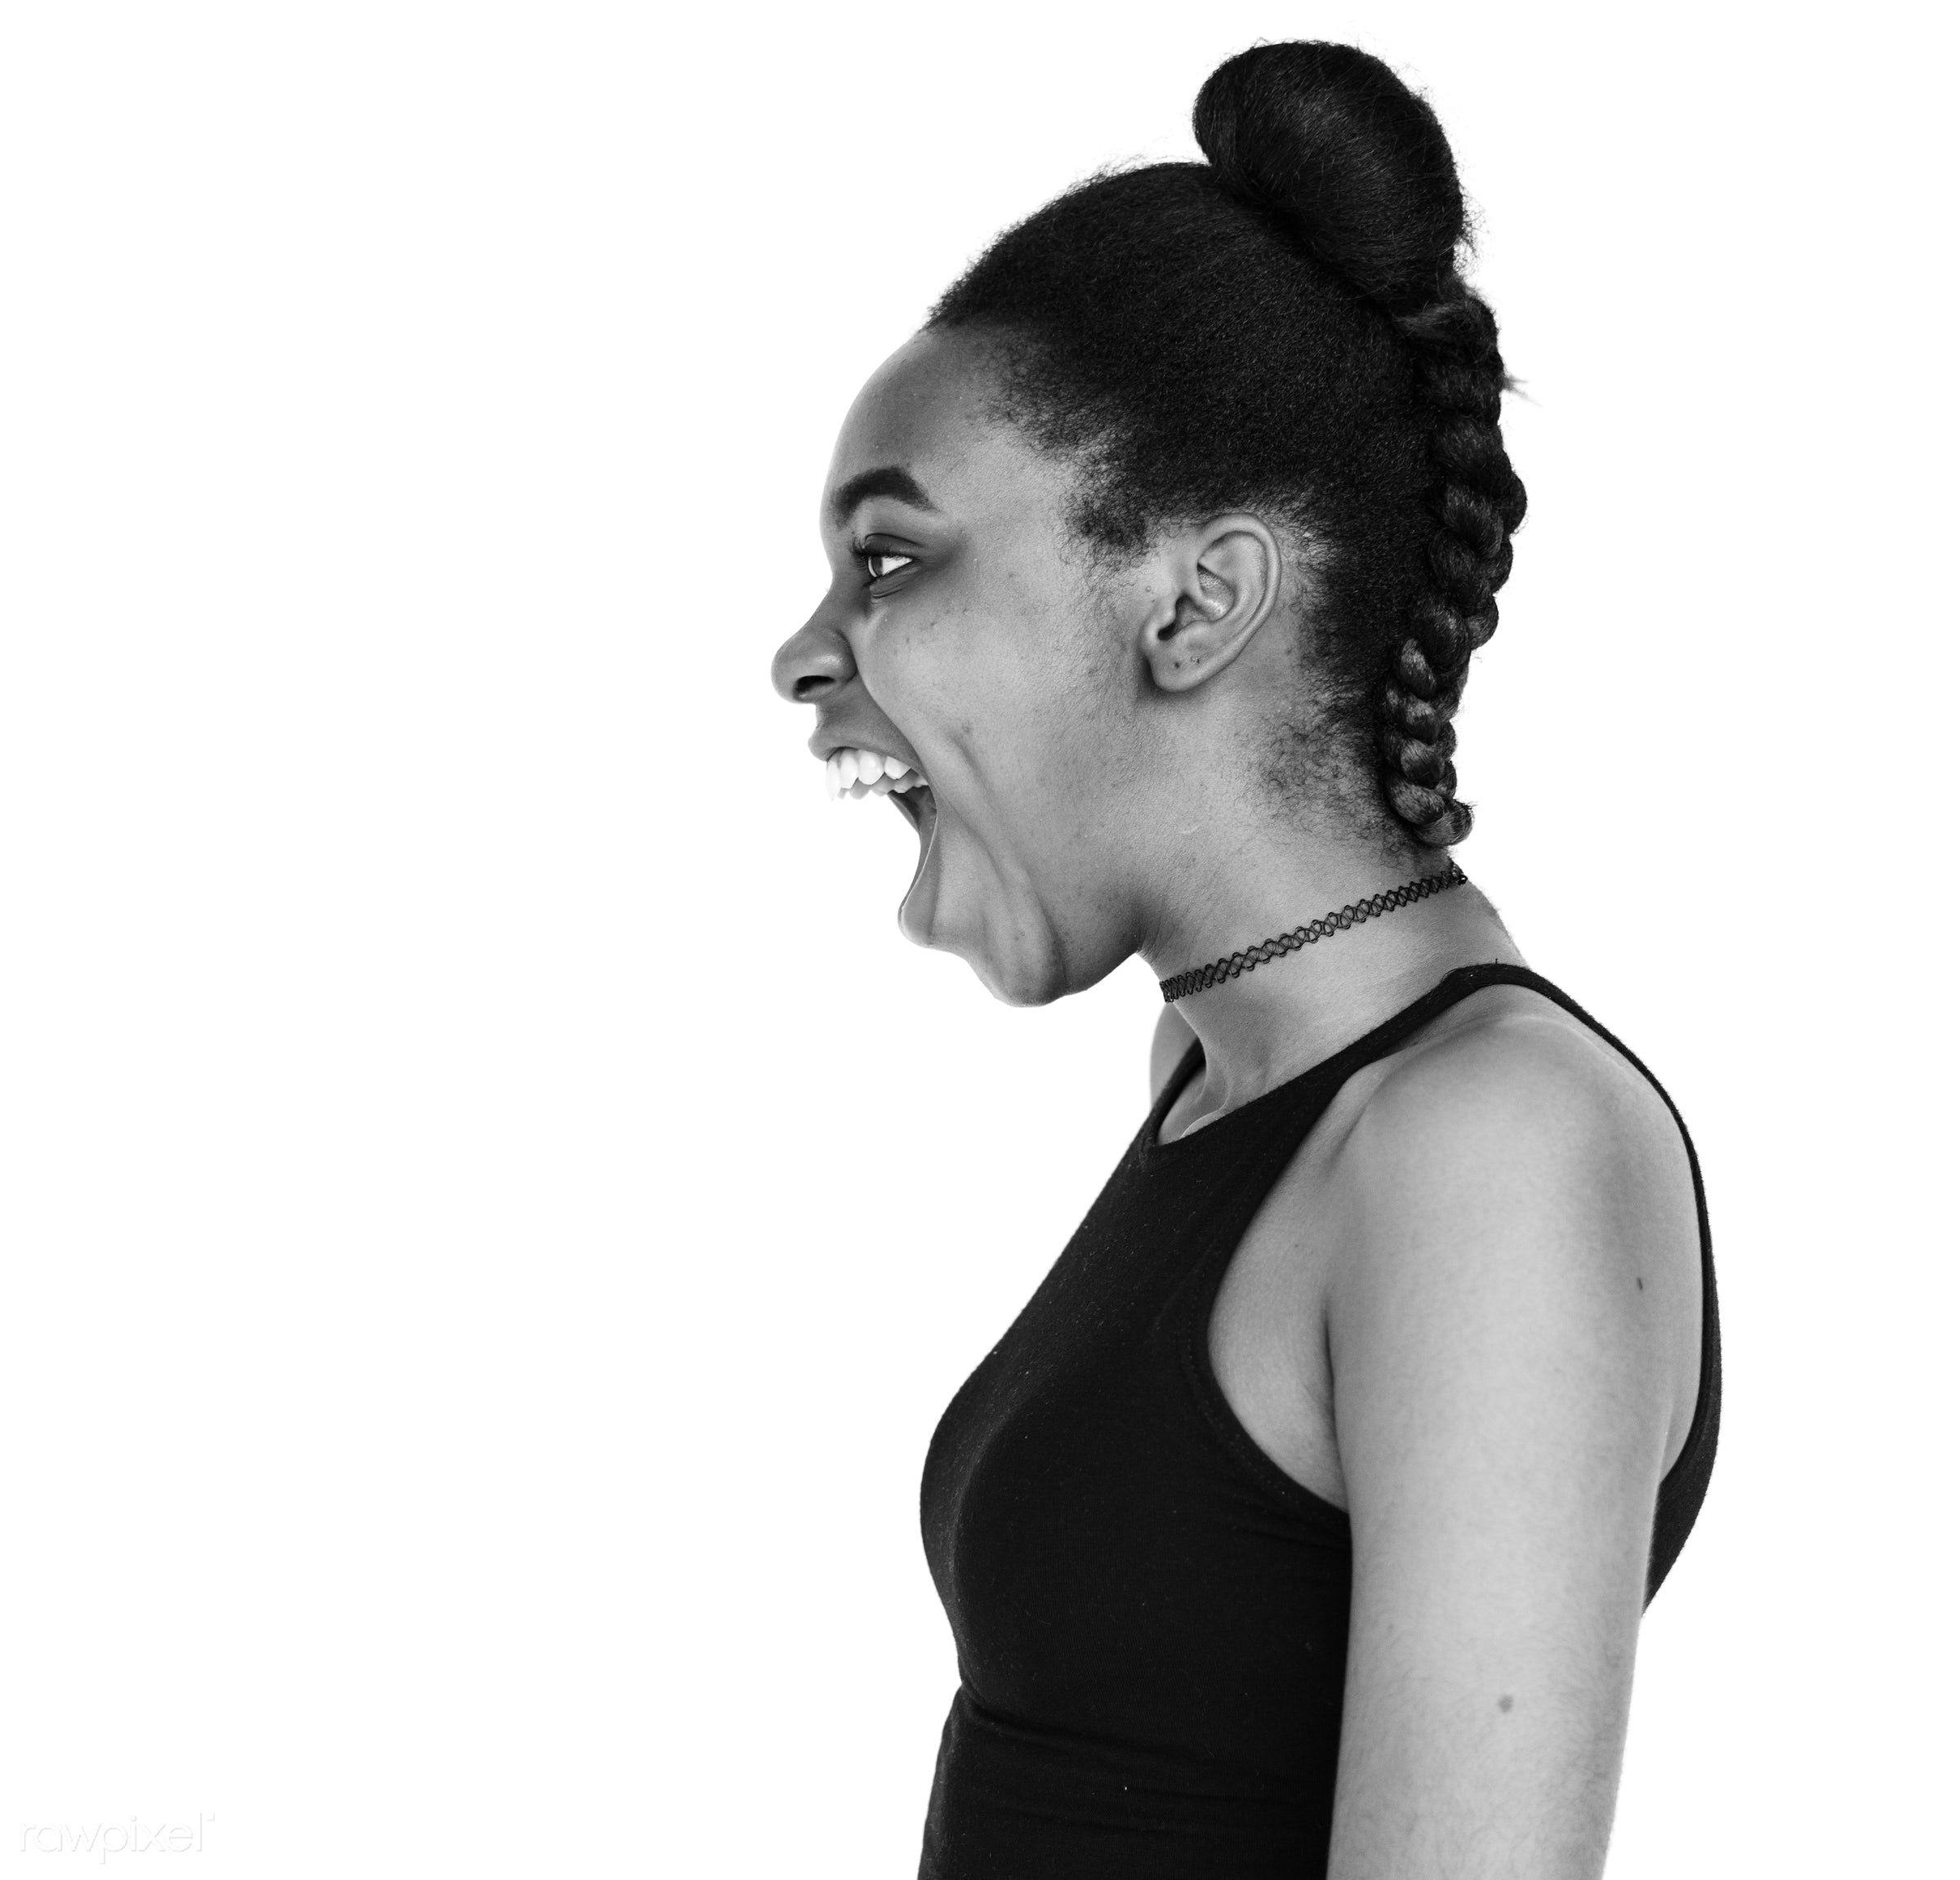 expression, studio, model, person, madam, isolated on white, people, race, style, woman, lifestyle, casual, feminism,...